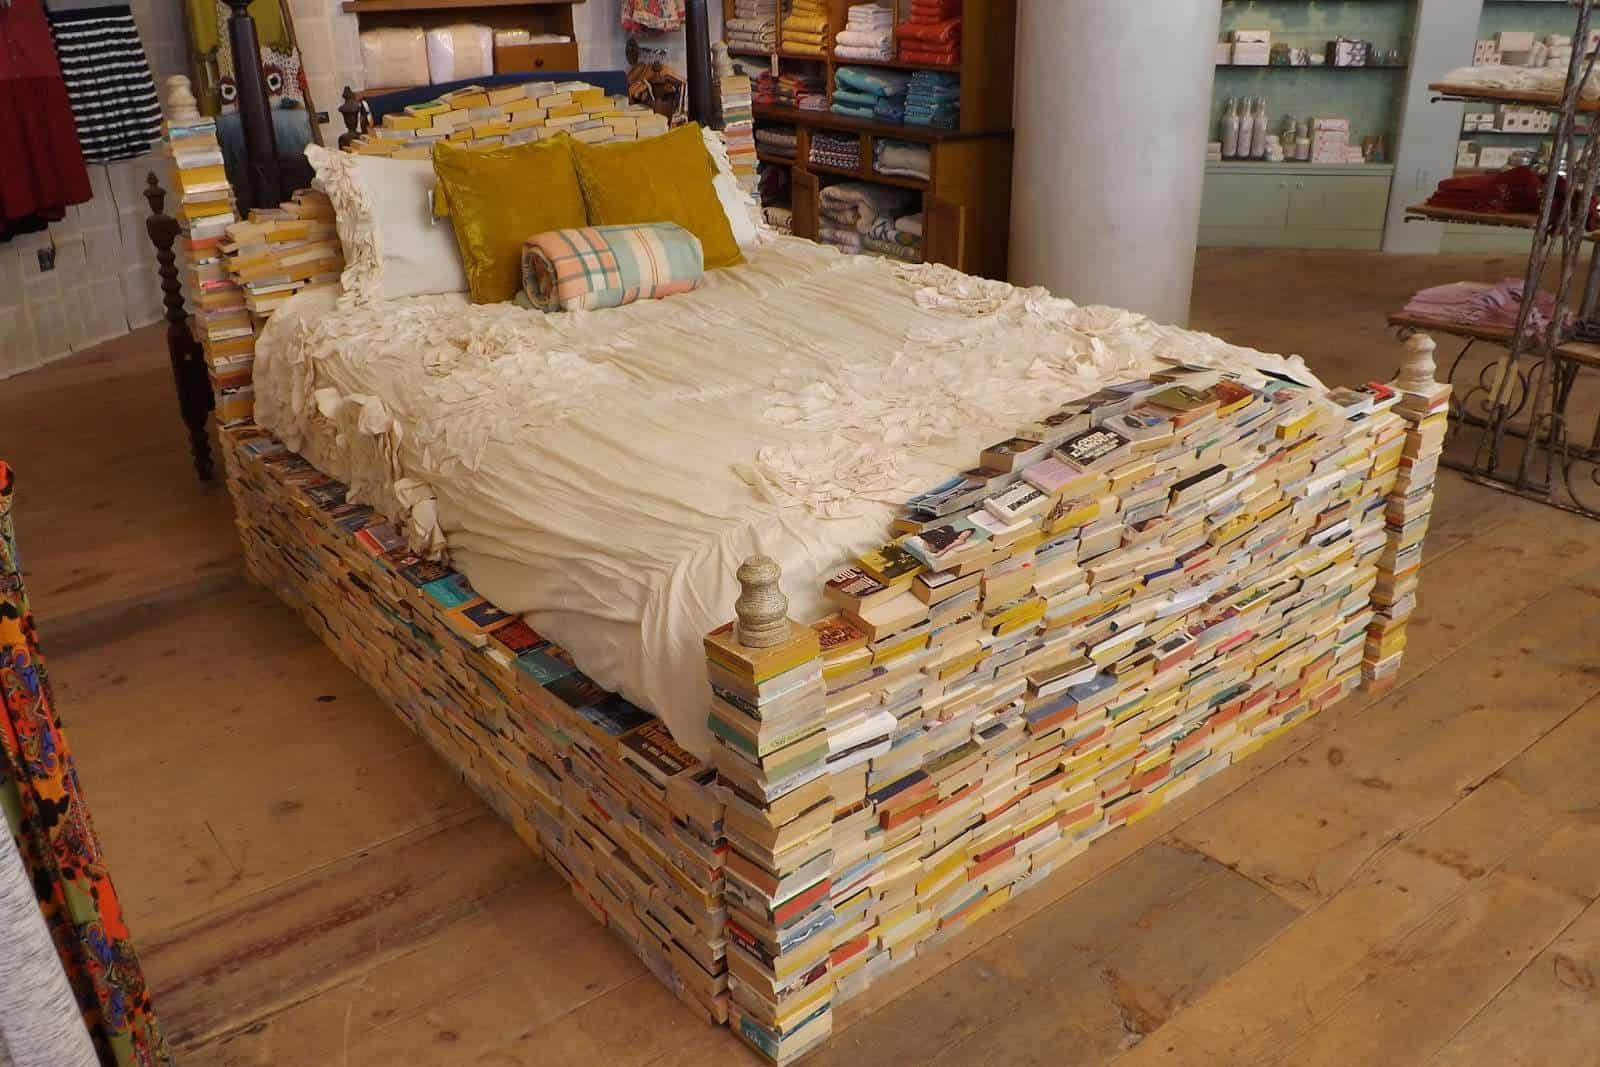 Books Bedframe u2022 Recycled Ideas u2022 Recyclart